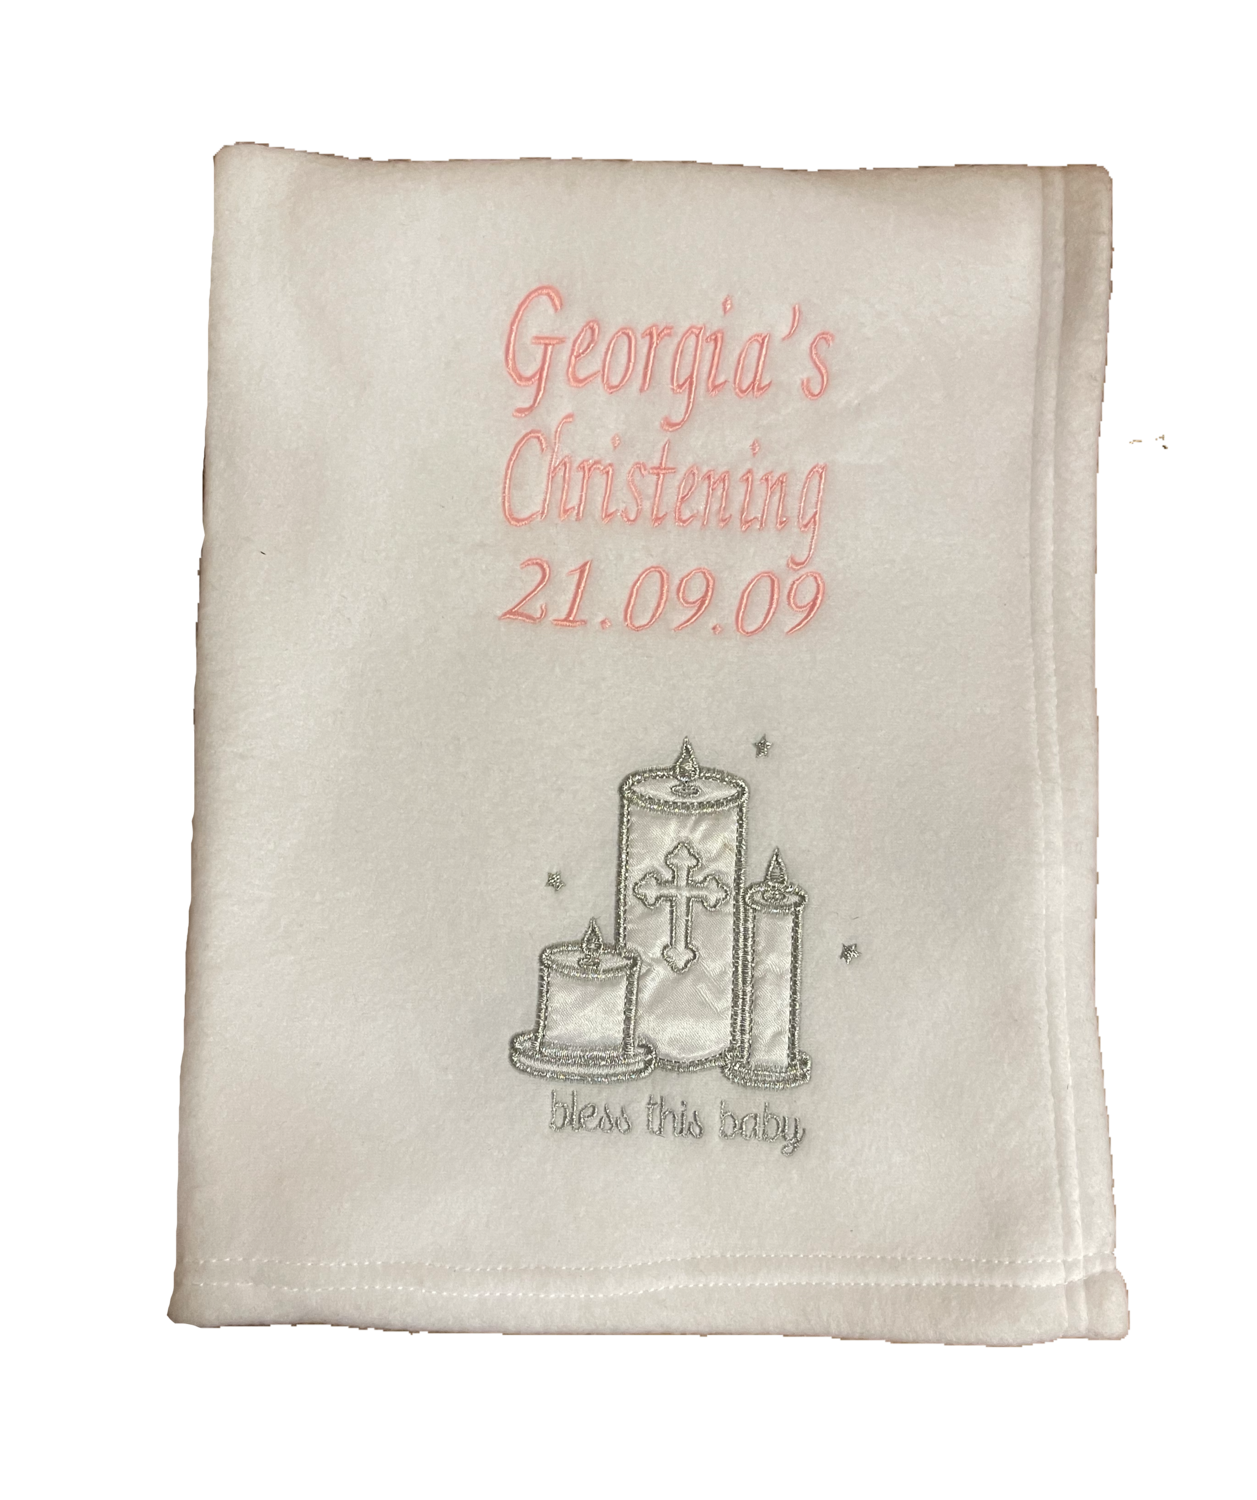 Christening blanket with candles